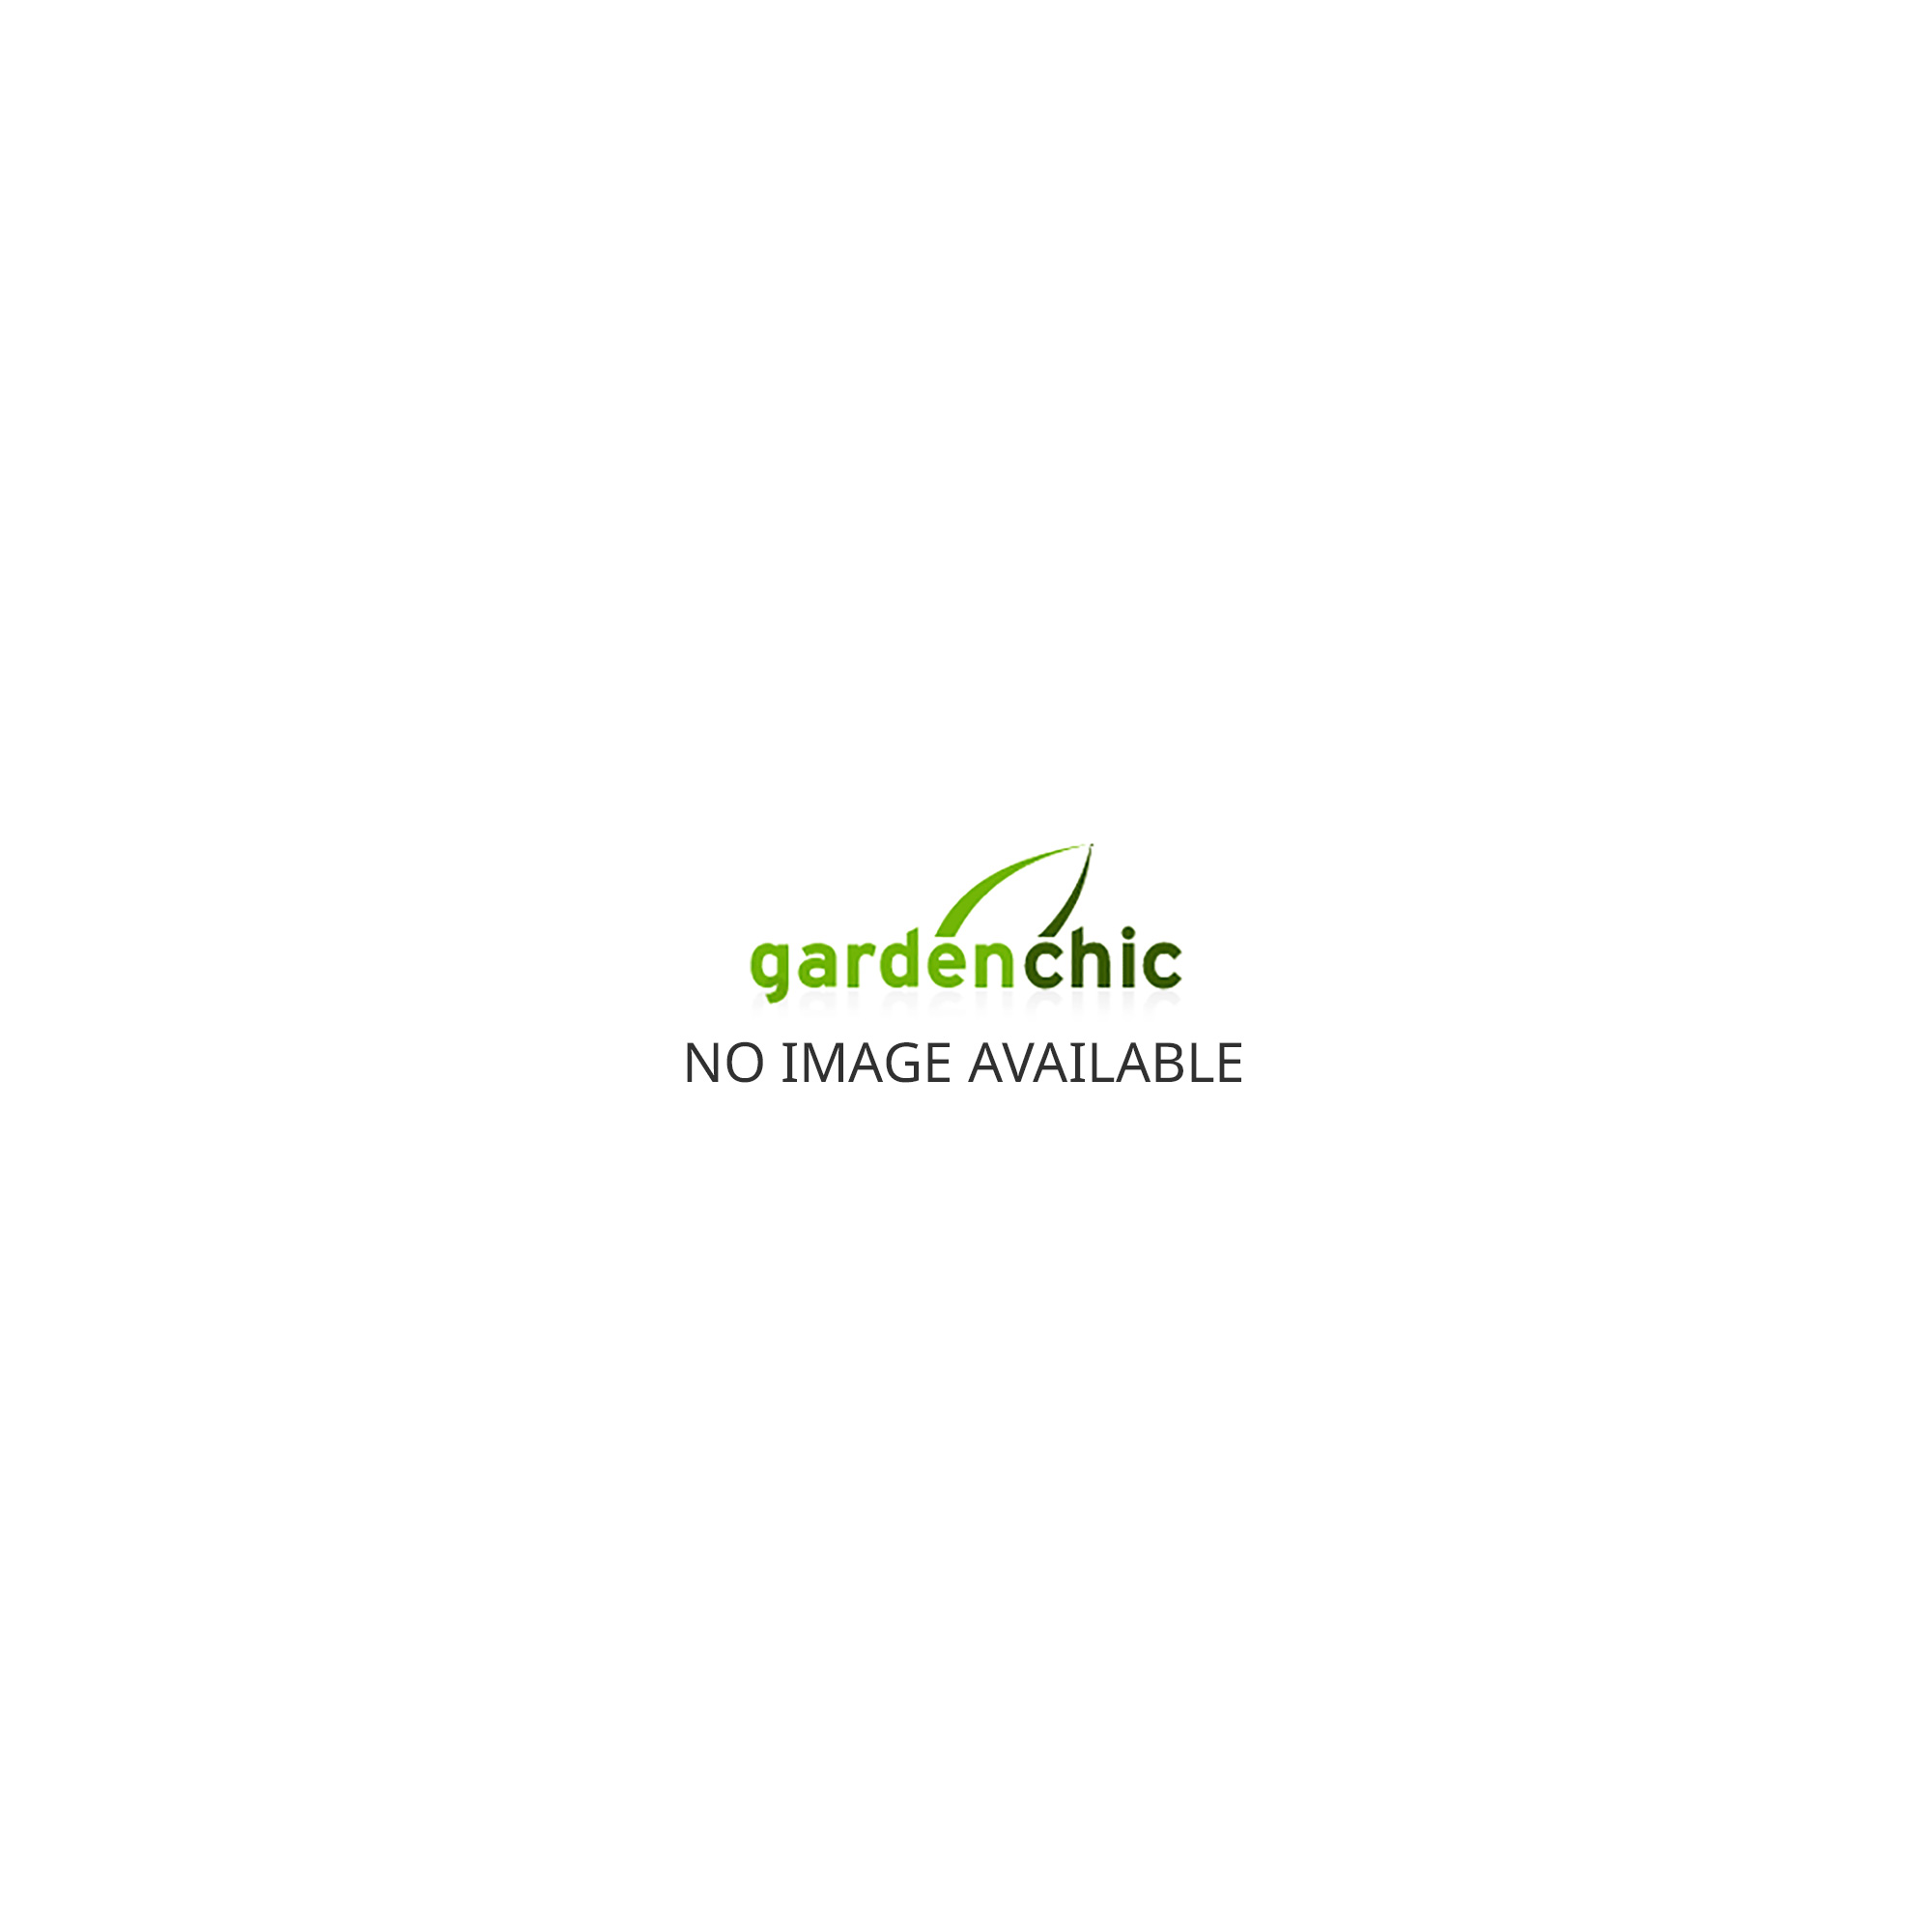 IDA 3300 Wall Garden 8ft x 4ft Greenhouse - Silver FREE Matching Base until 31st July 2018